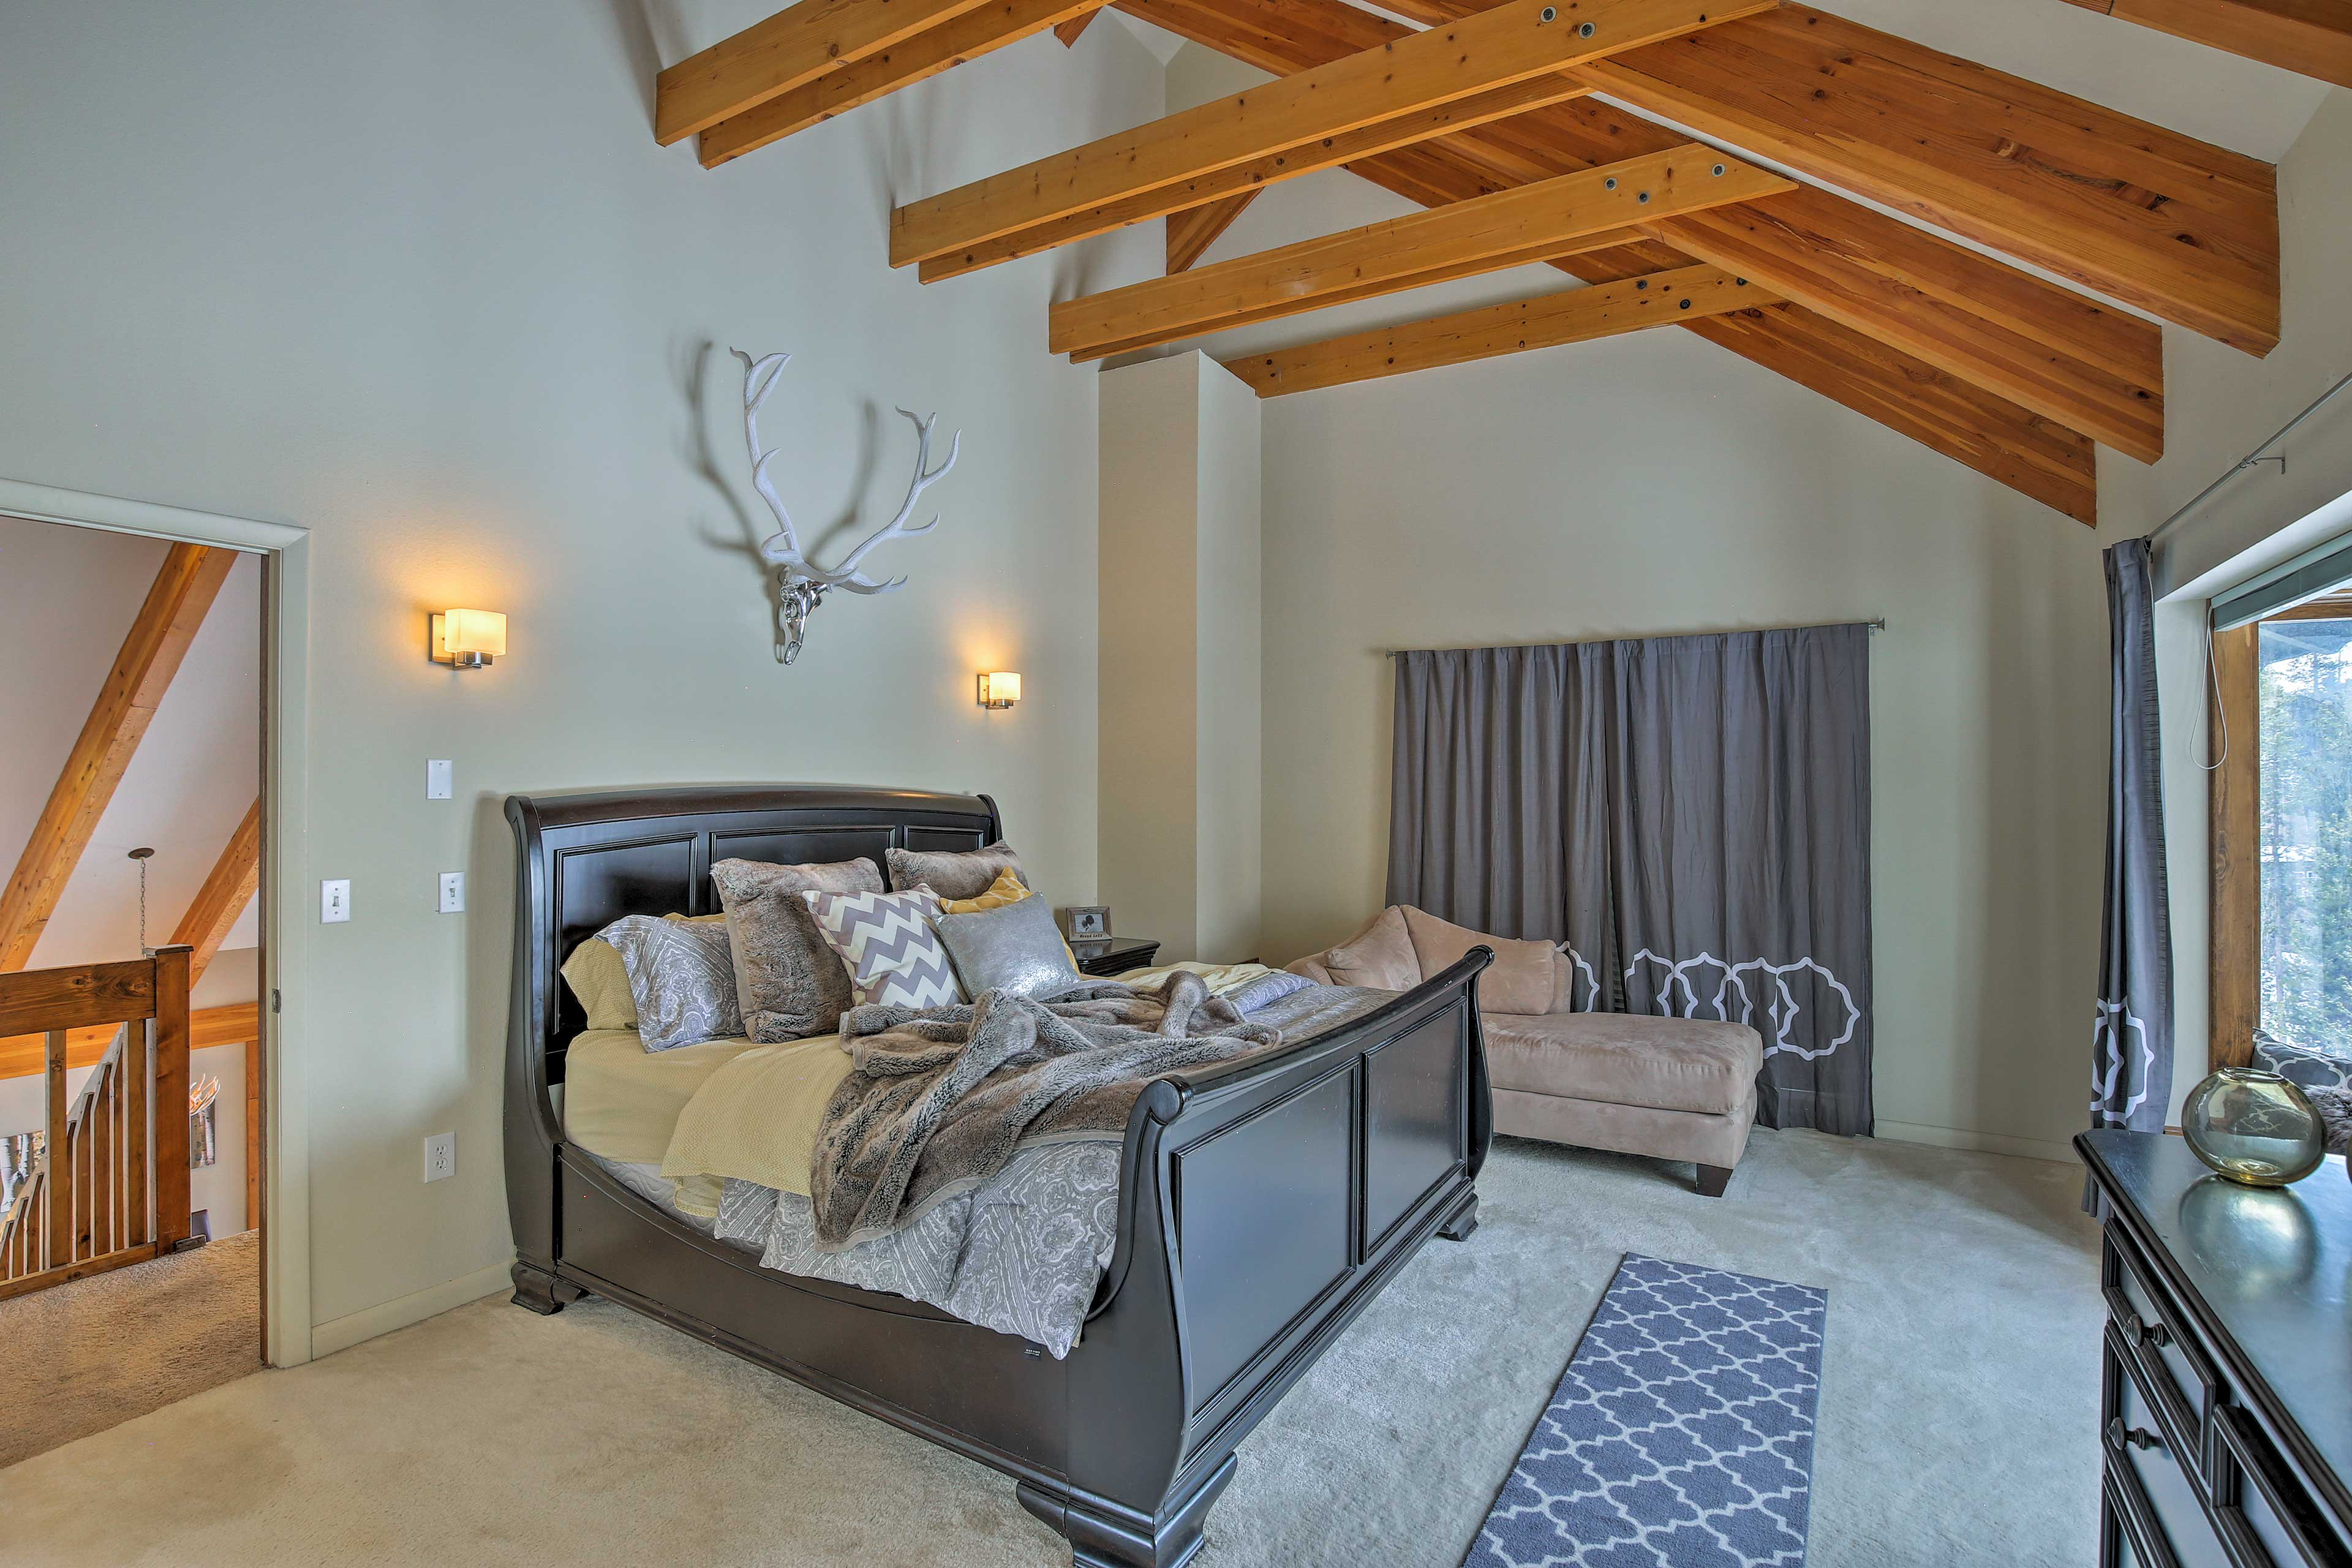 he upstairs master bedroom serves as a resort-like retreat for 2.